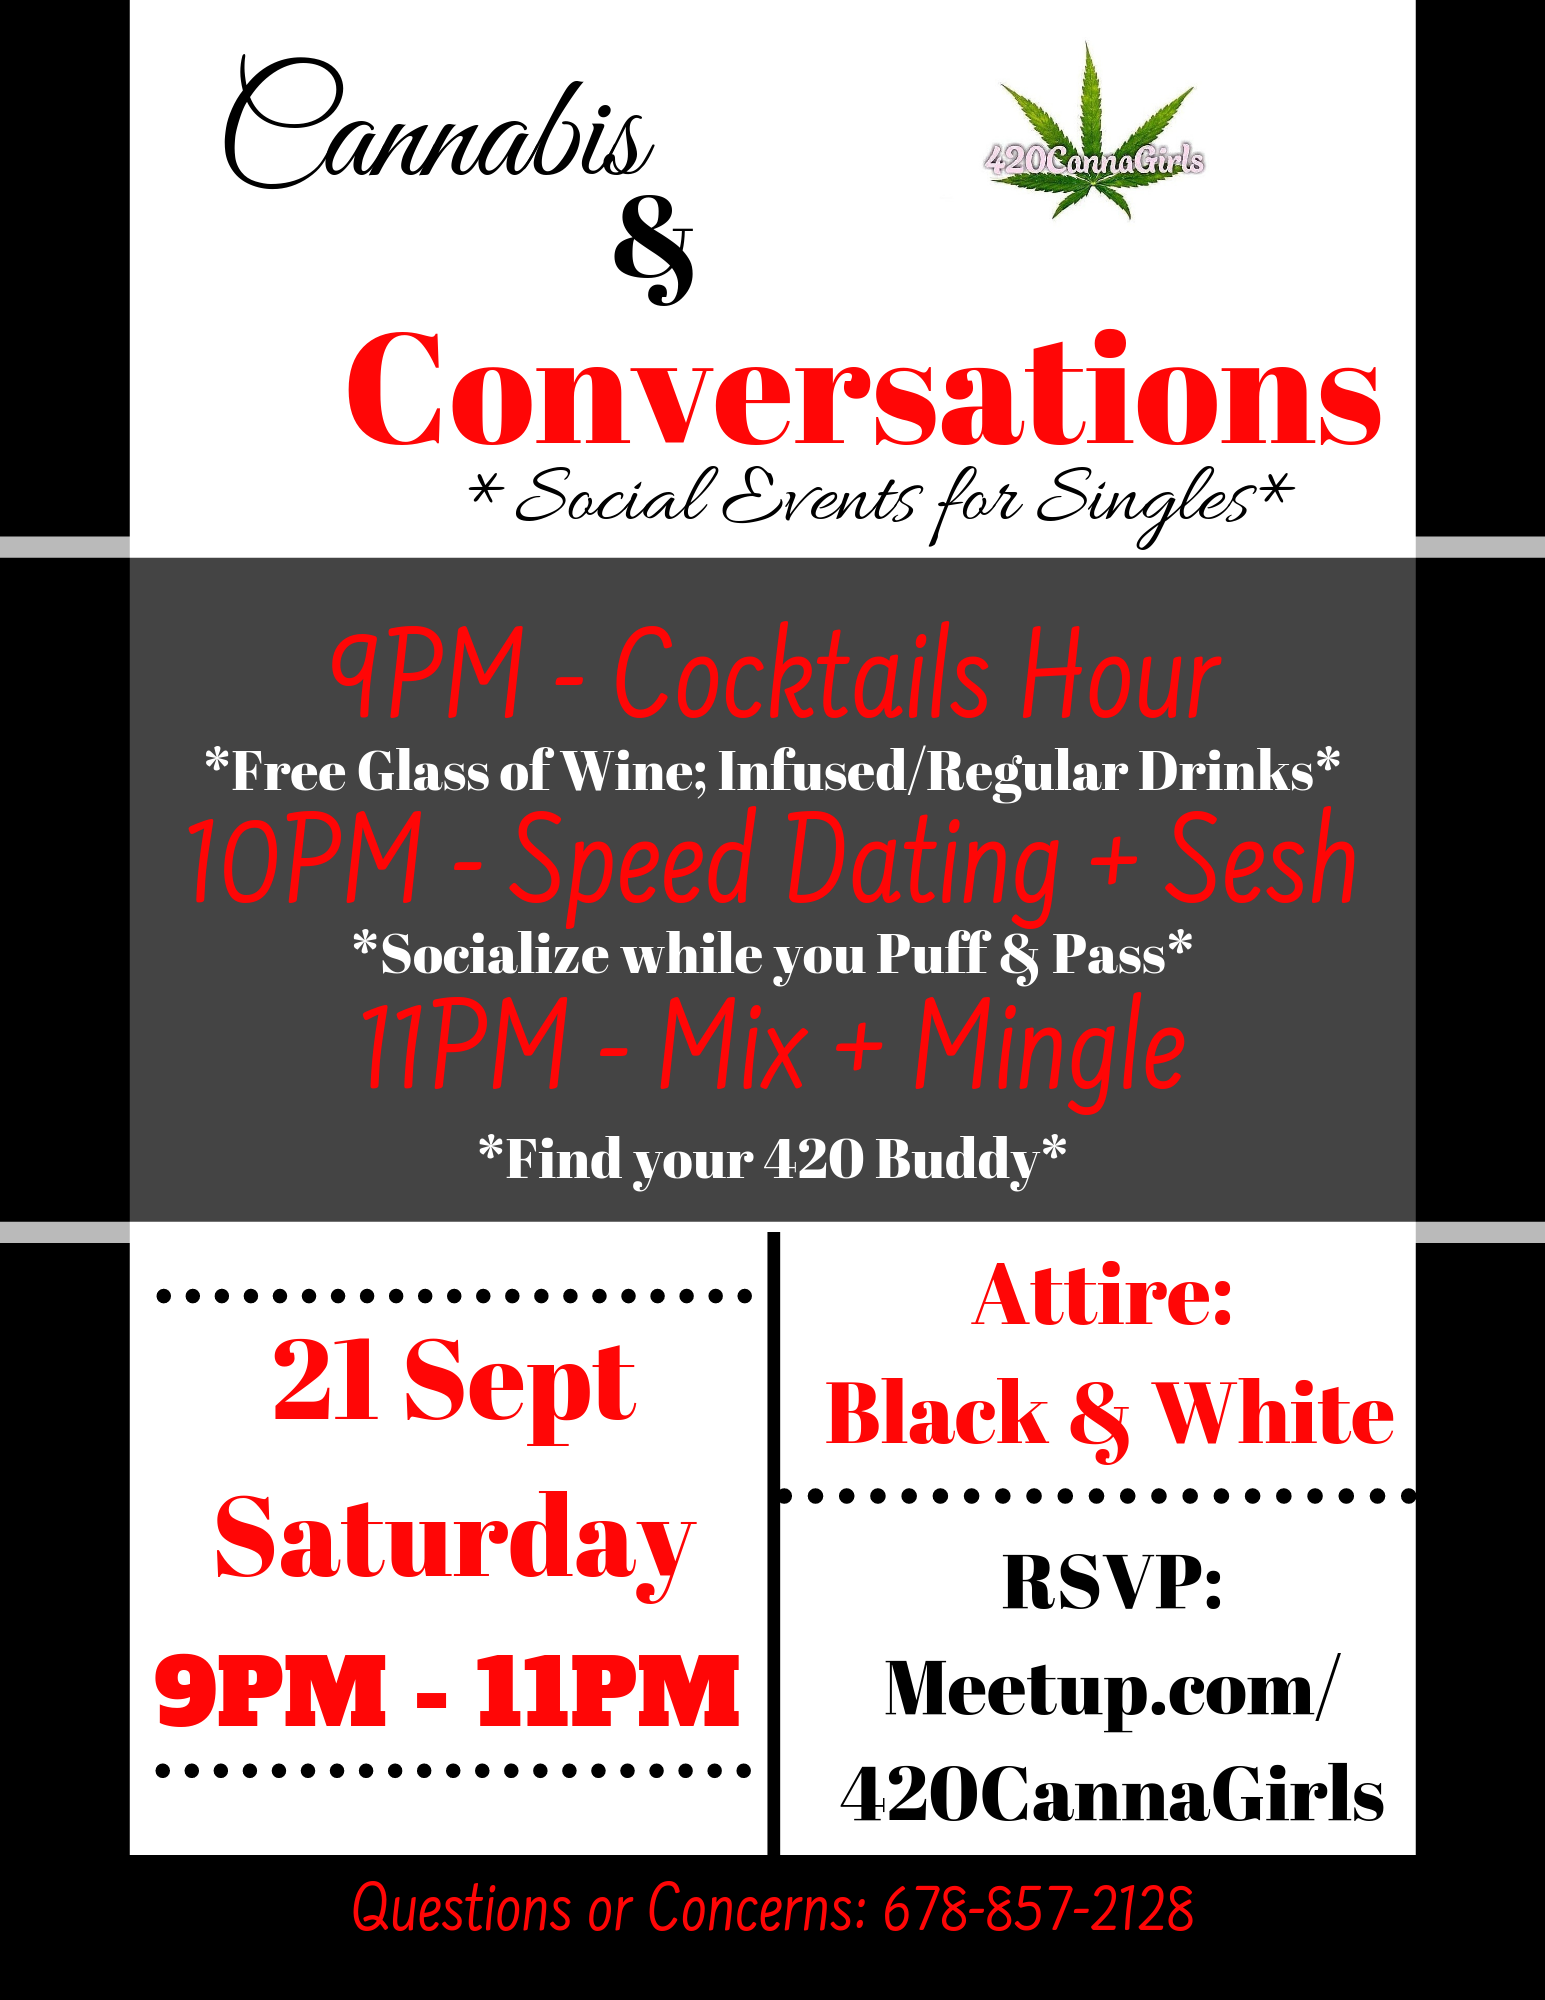 Cannabis + Conversation: Social Event for Singles